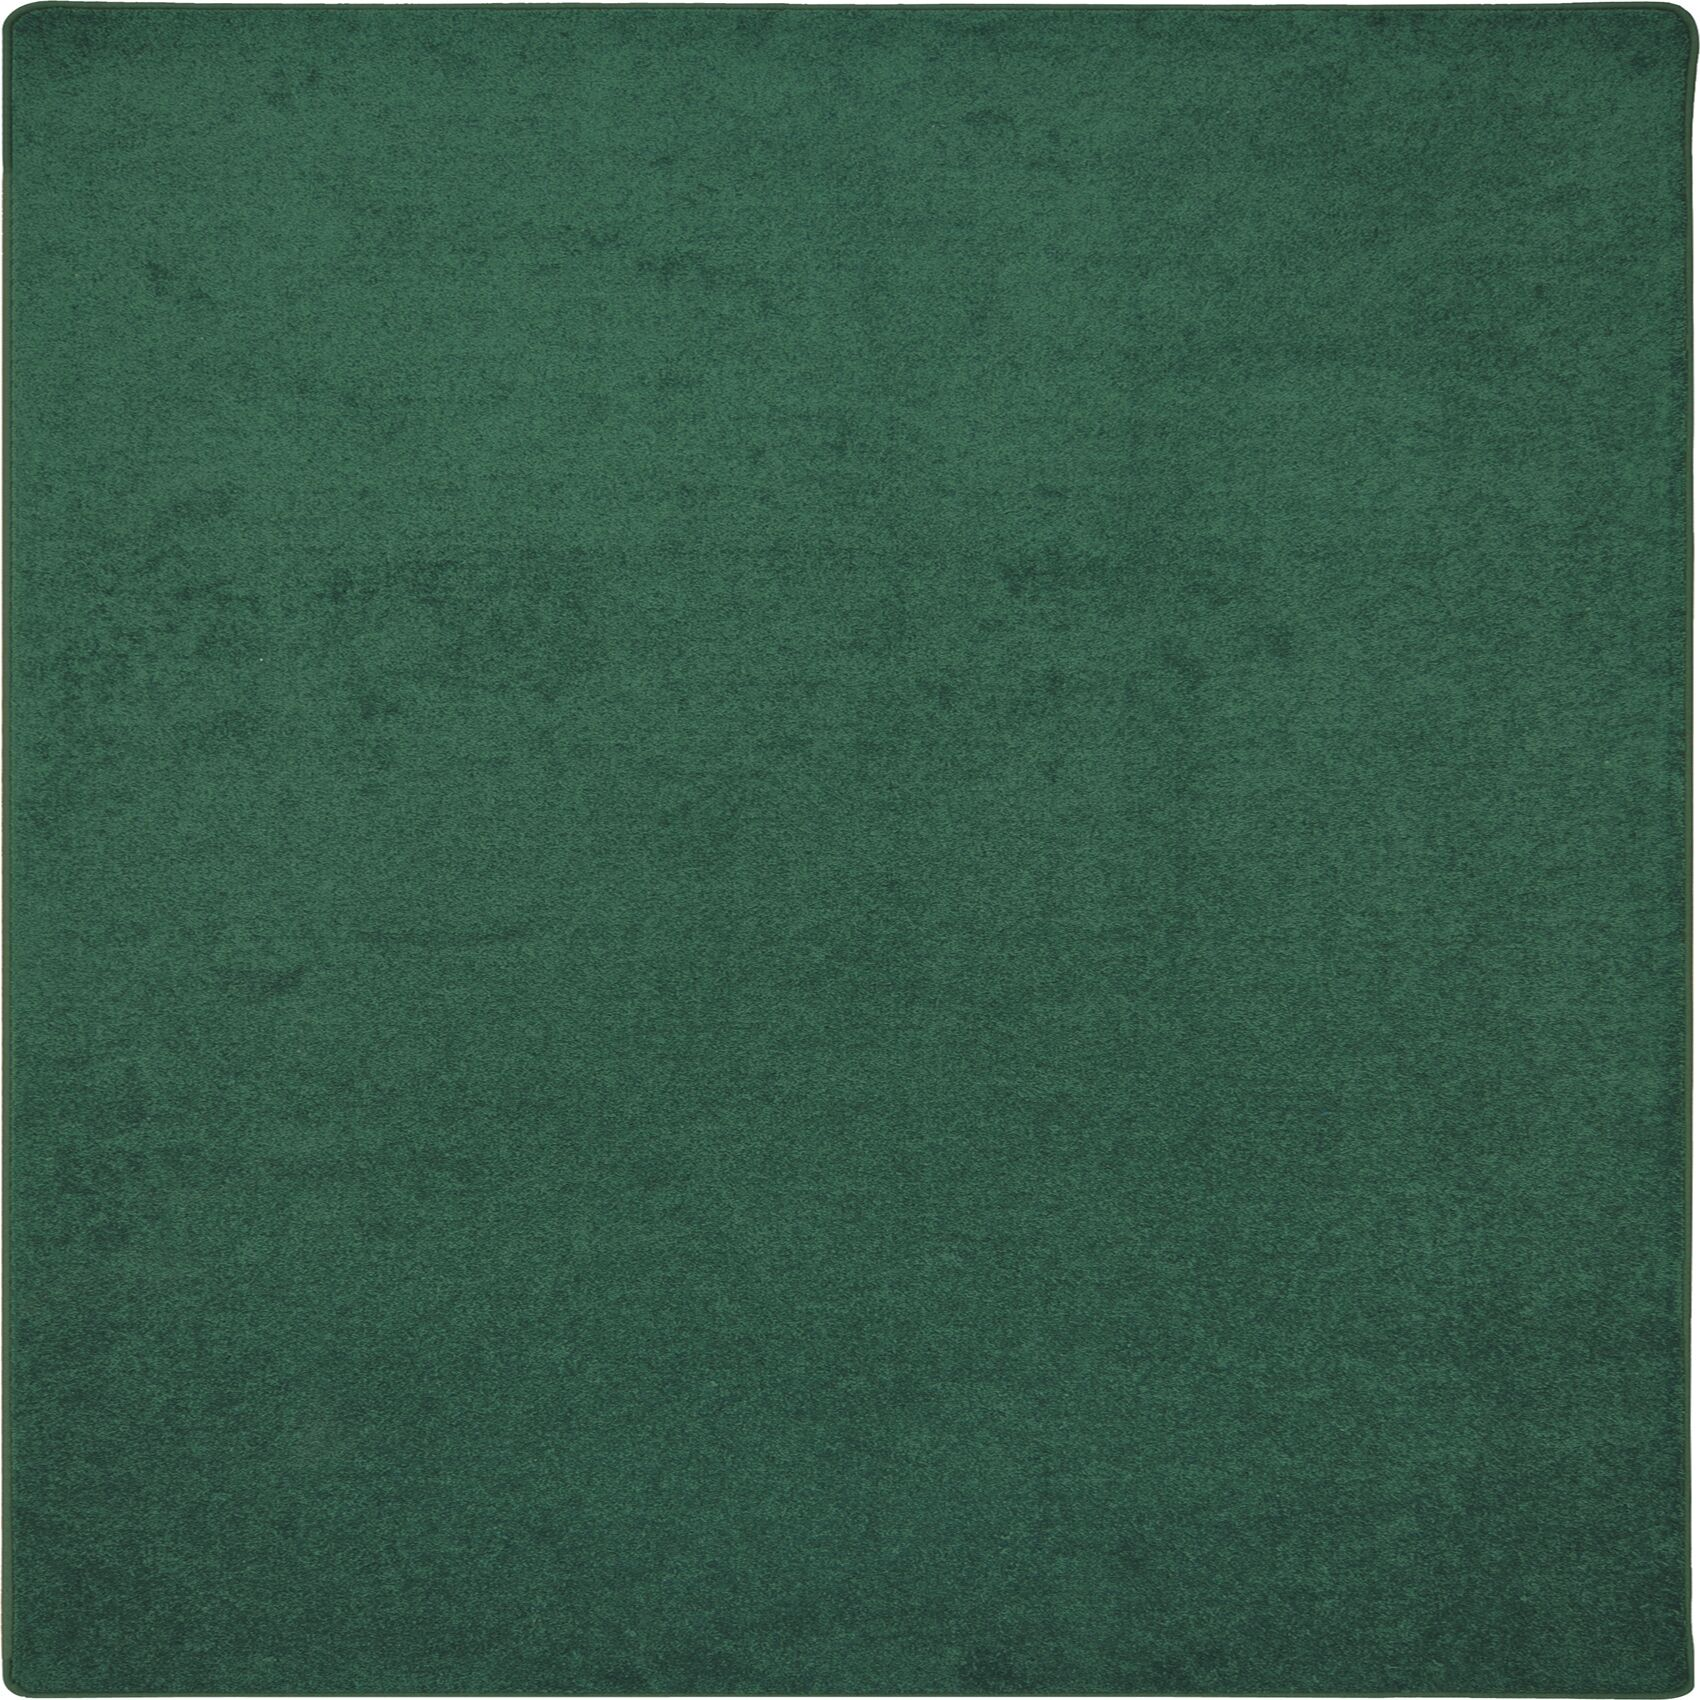 Green Area Rug Rug Size: Square 12'